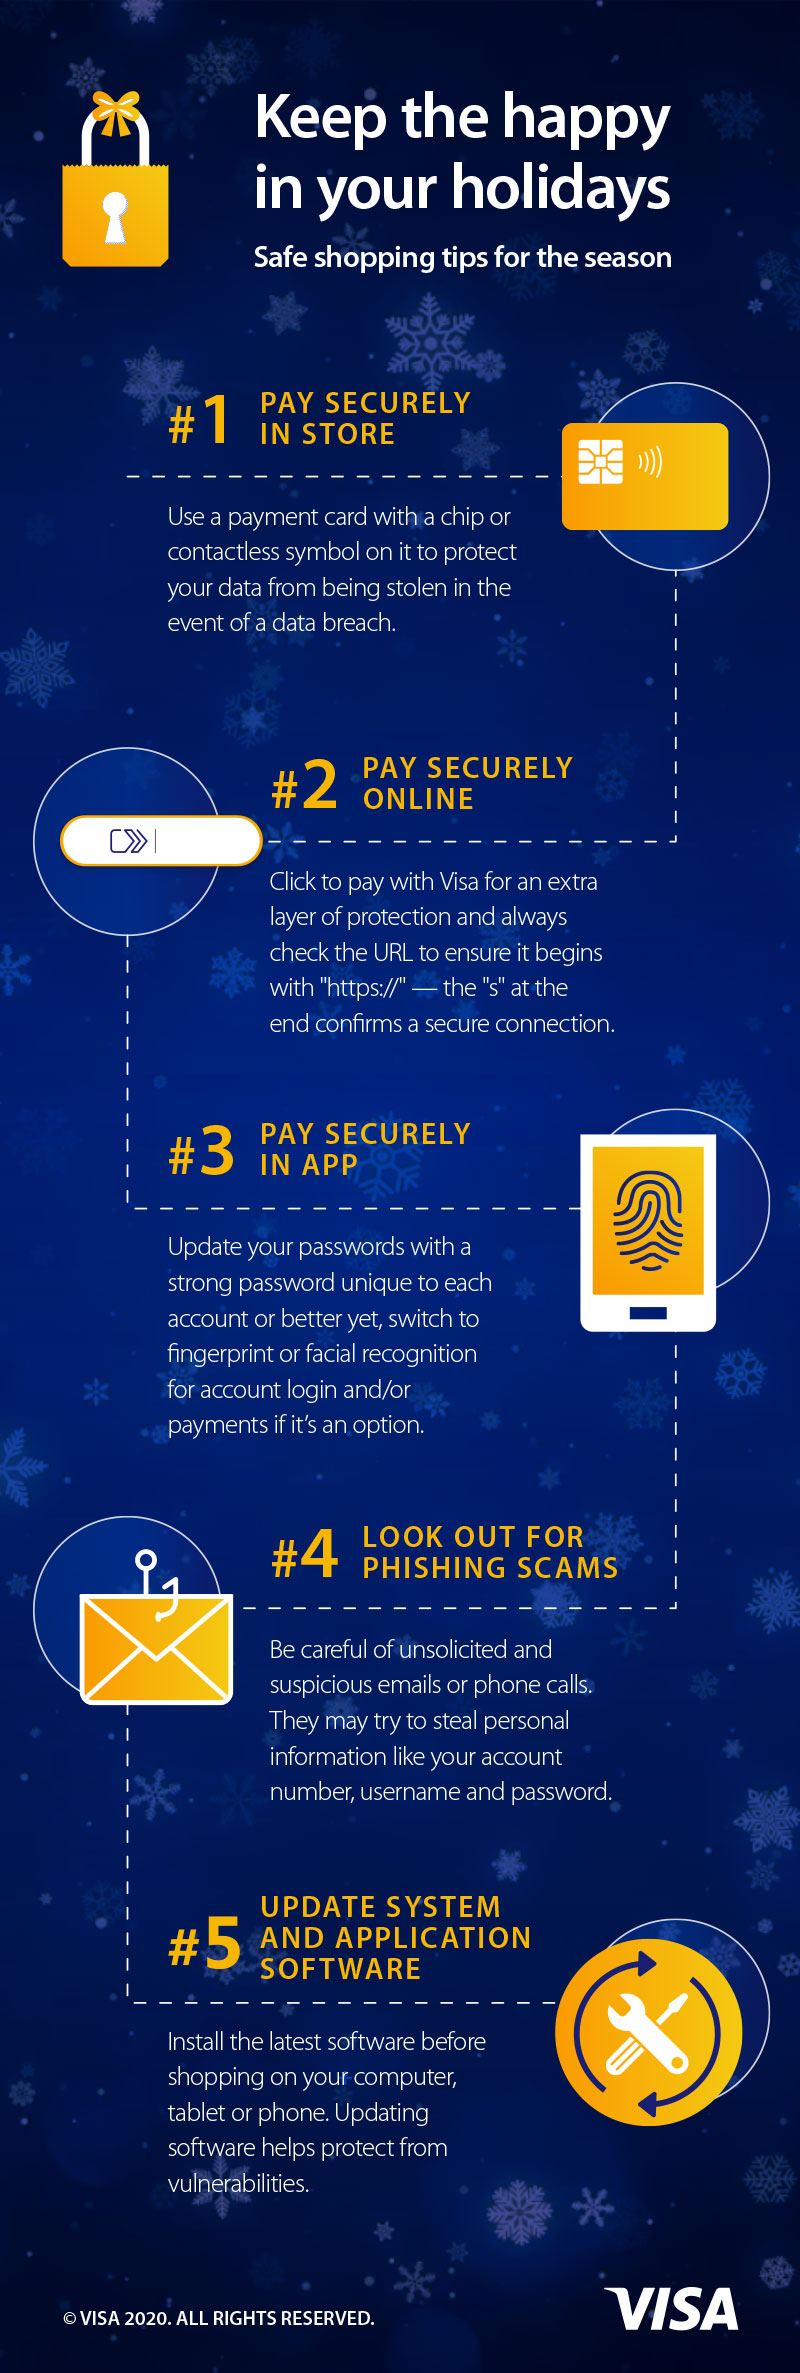 Information graphic with tips for safe holiday shopping from Visa